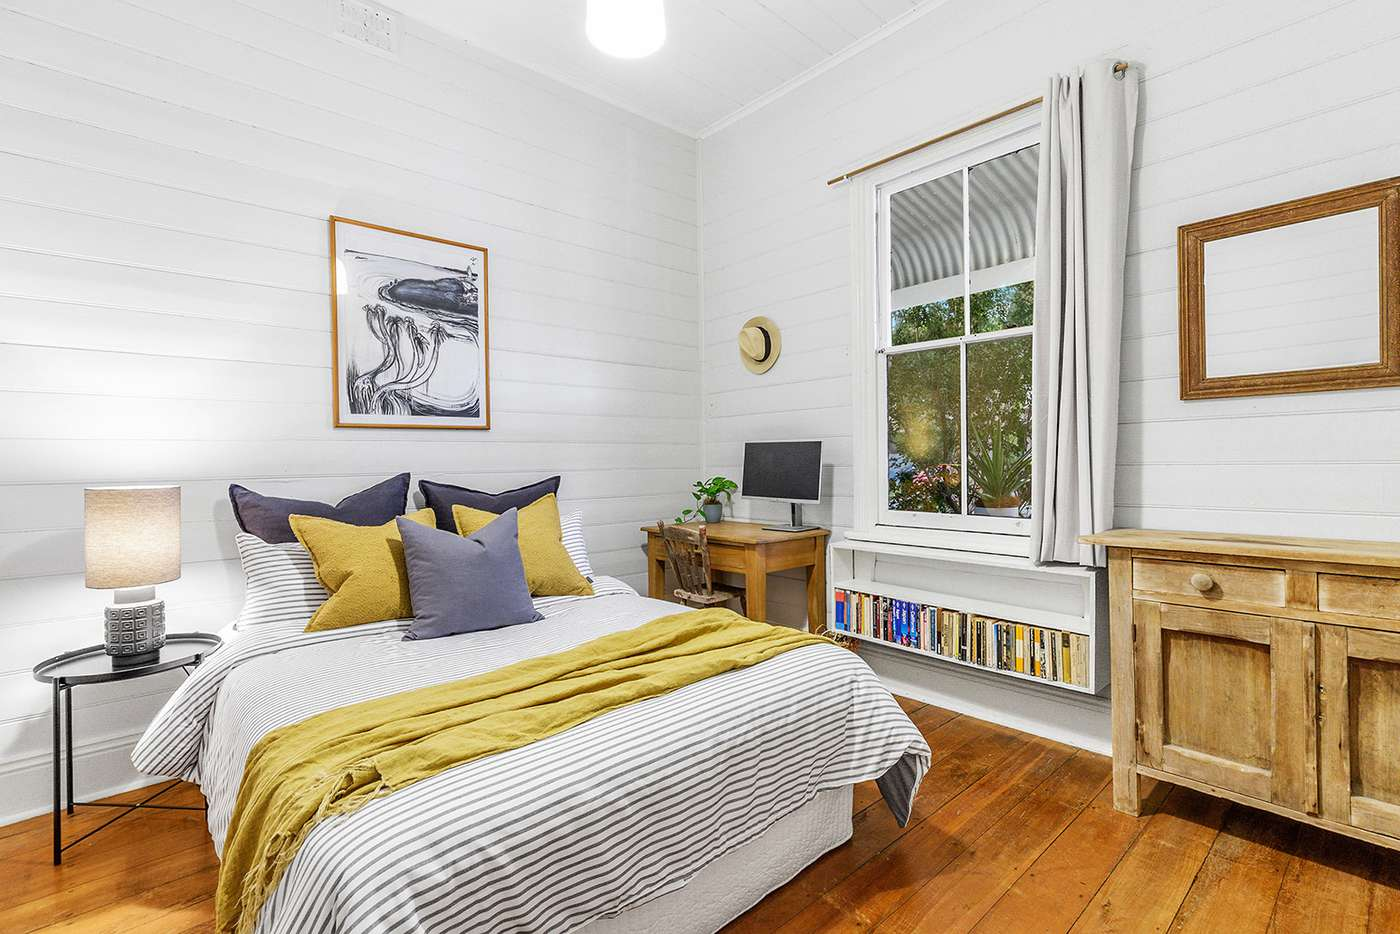 Sixth view of Homely house listing, 11 Elcho Street, Hamilton NSW 2303